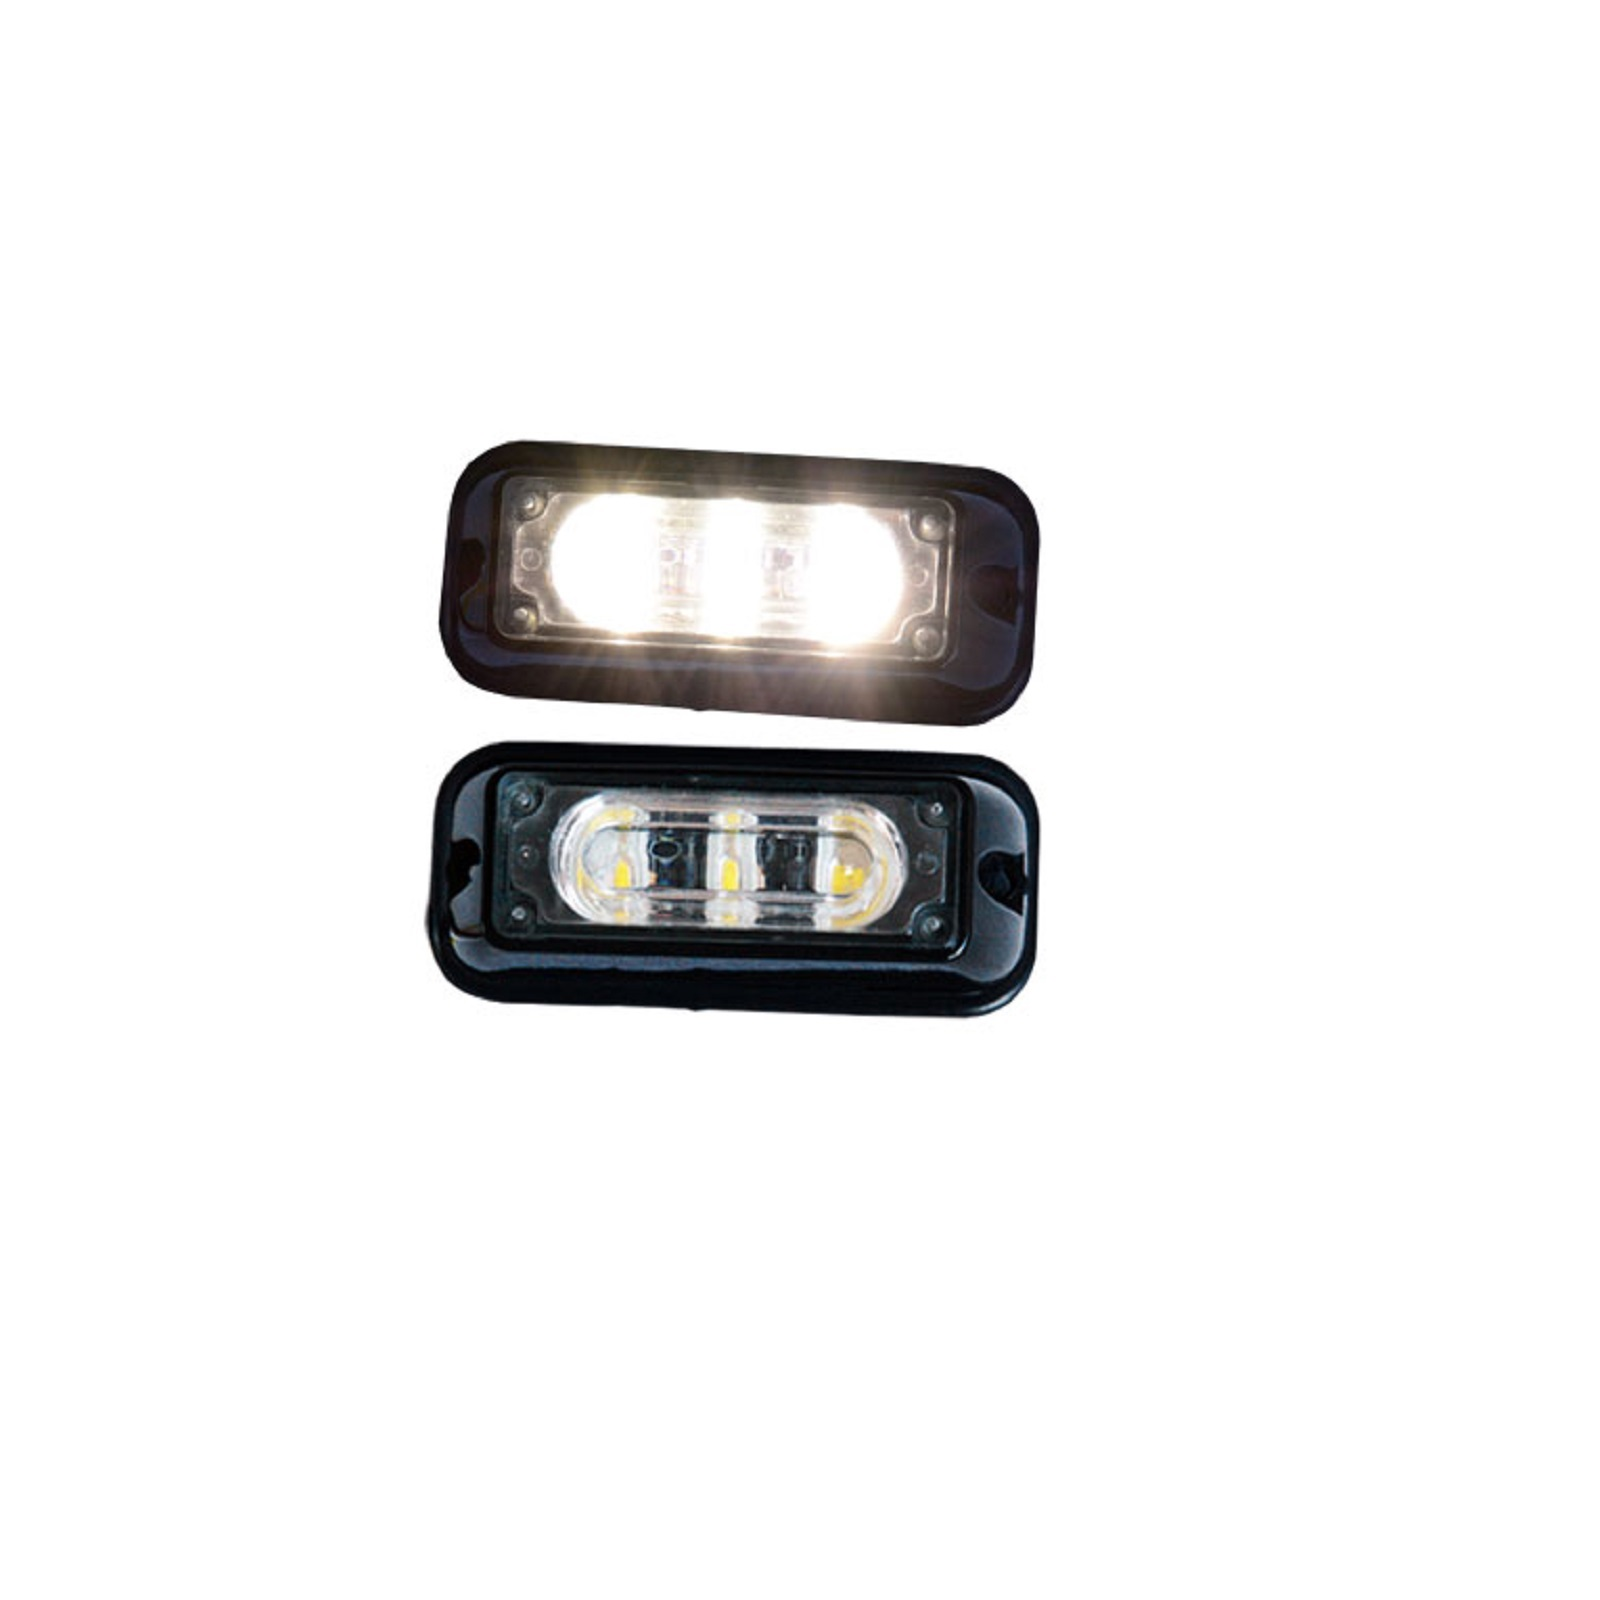 Professional linear traffic led light, police emergency exterior led head light